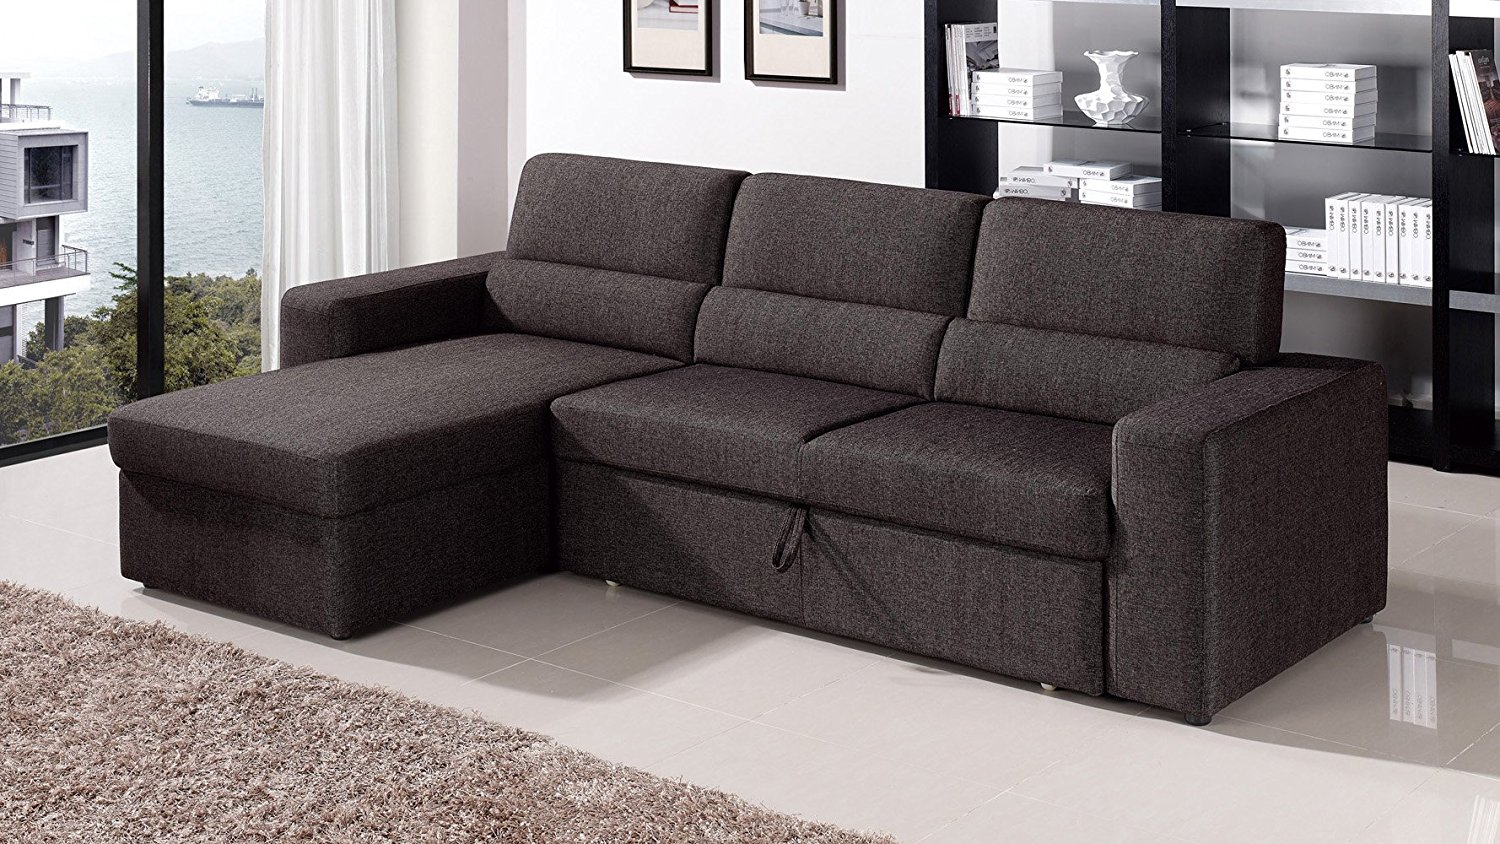 Clubber Convertible Sectional Sofa Bed | Royals Courage : Virtually ...